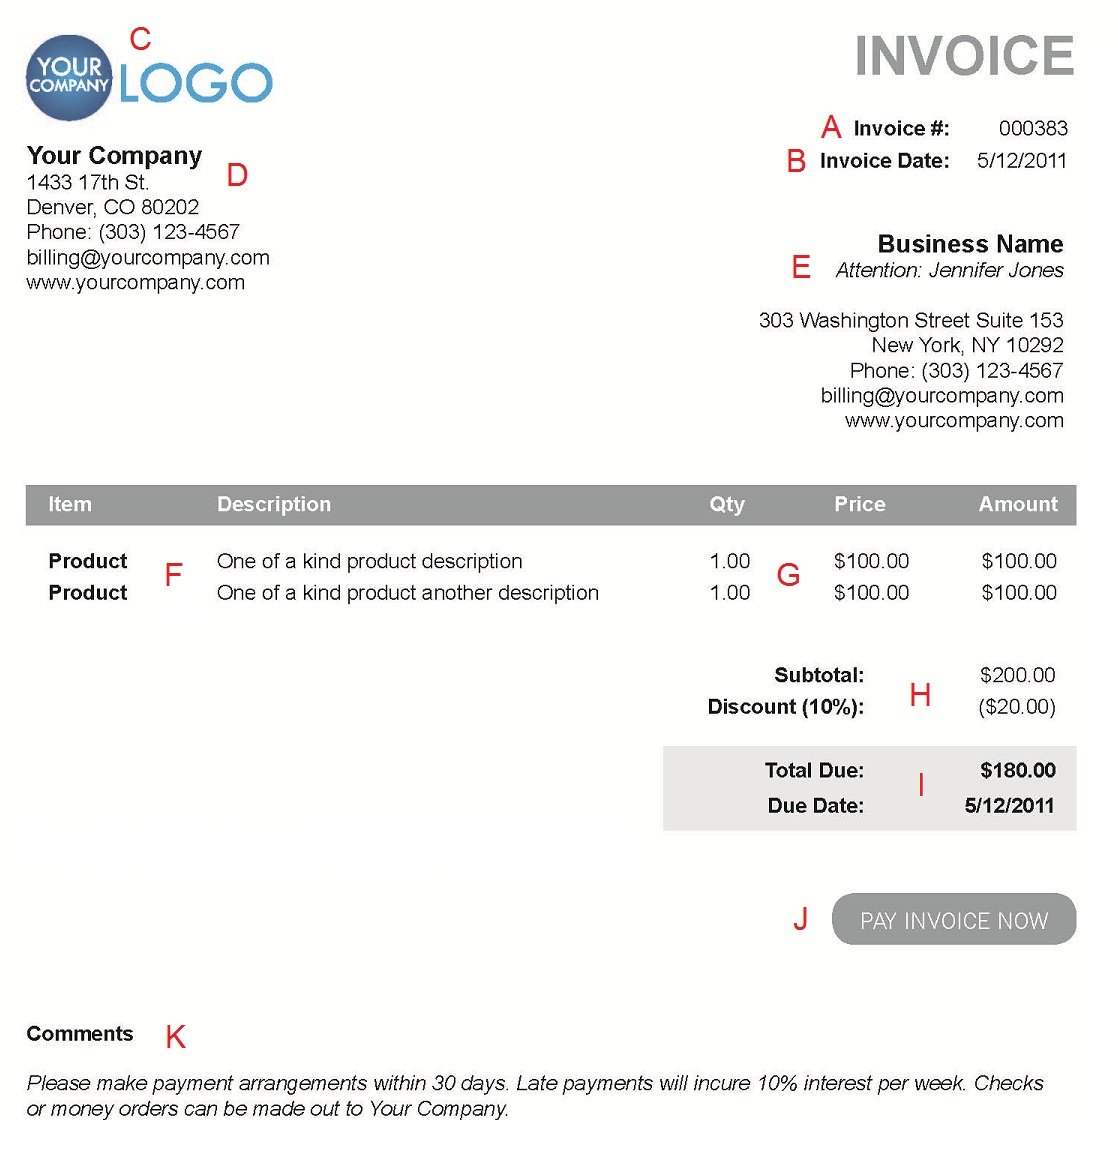 Centralasianshepherdus  Unique The  Different Sections Of An Electronic Payment Invoice With Licious A  With Attractive Sample Invoice Consulting Services Also How Do I Pay An Invoice On Paypal In Addition Invoice Generator Software Free Download And Customizing Invoices In Quickbooks As Well As Mechanic Shop Invoice Templates Additionally Quill Com Invoice From Paysimplecom With Centralasianshepherdus  Licious The  Different Sections Of An Electronic Payment Invoice With Attractive A  And Unique Sample Invoice Consulting Services Also How Do I Pay An Invoice On Paypal In Addition Invoice Generator Software Free Download From Paysimplecom